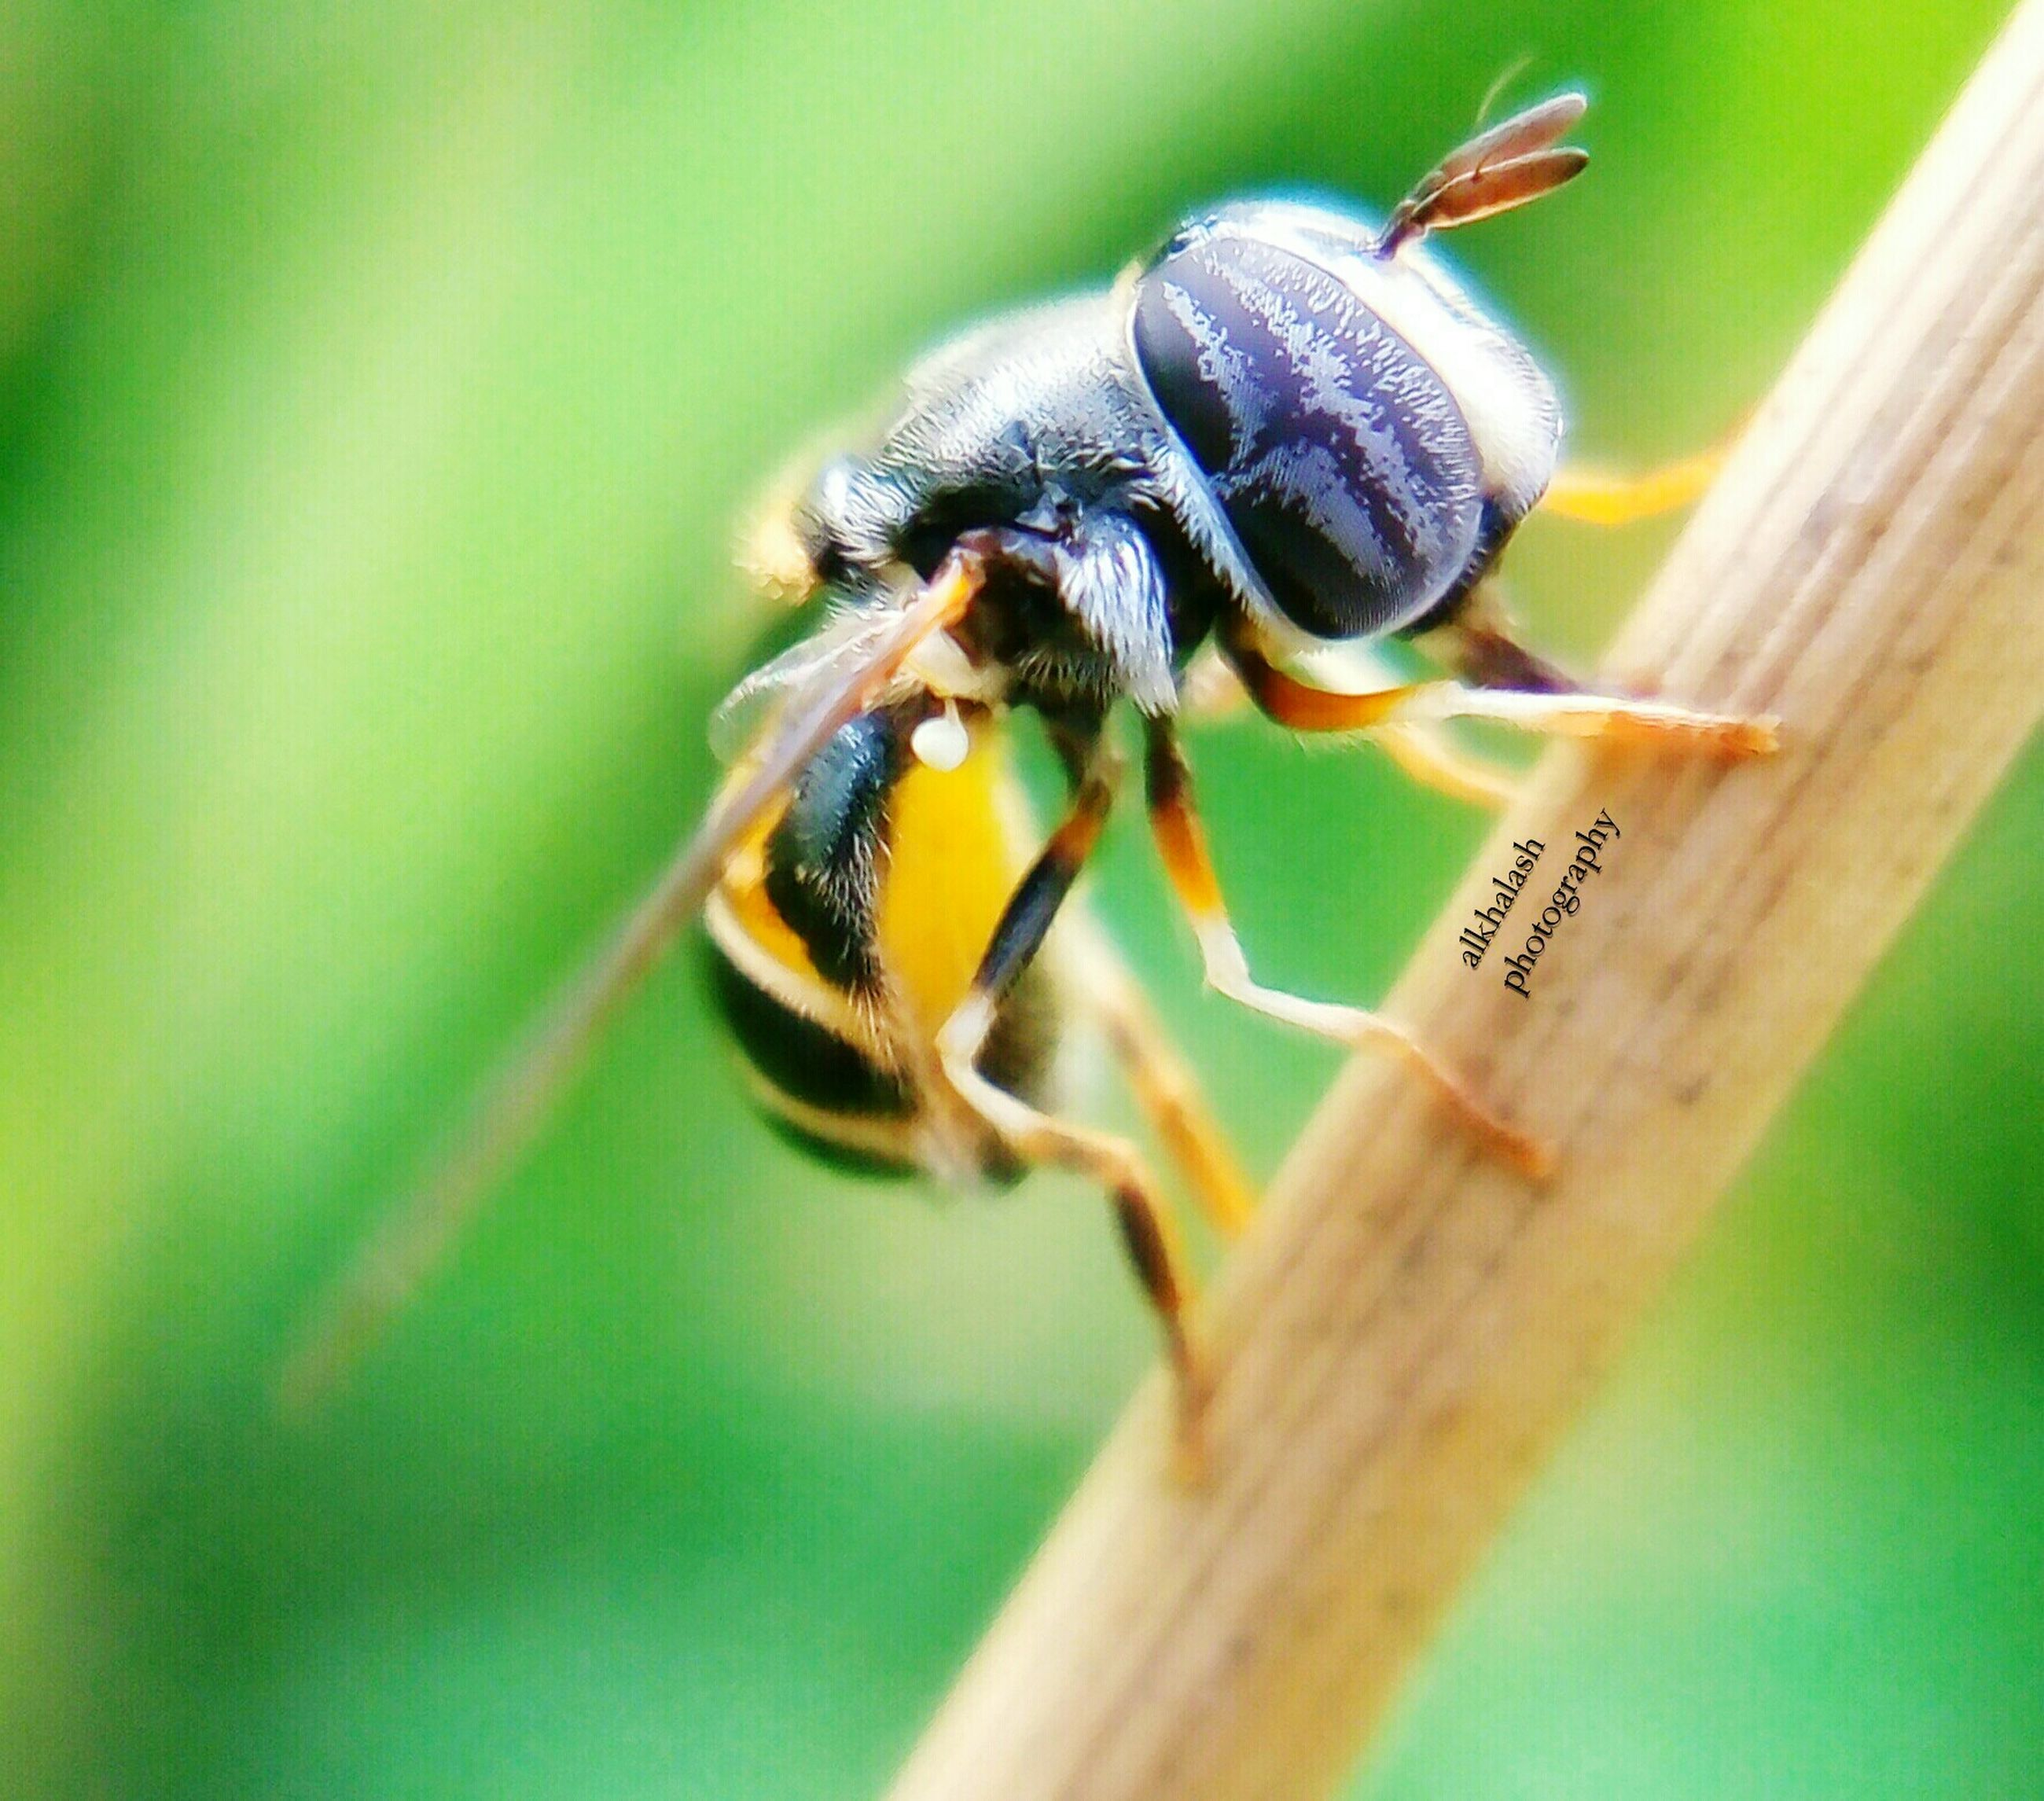 insect, one animal, animal themes, animals in the wild, wildlife, close-up, focus on foreground, selective focus, nature, flower, zoology, day, animal antenna, bee, outdoors, fly, beauty in nature, no people, animal wing, full length